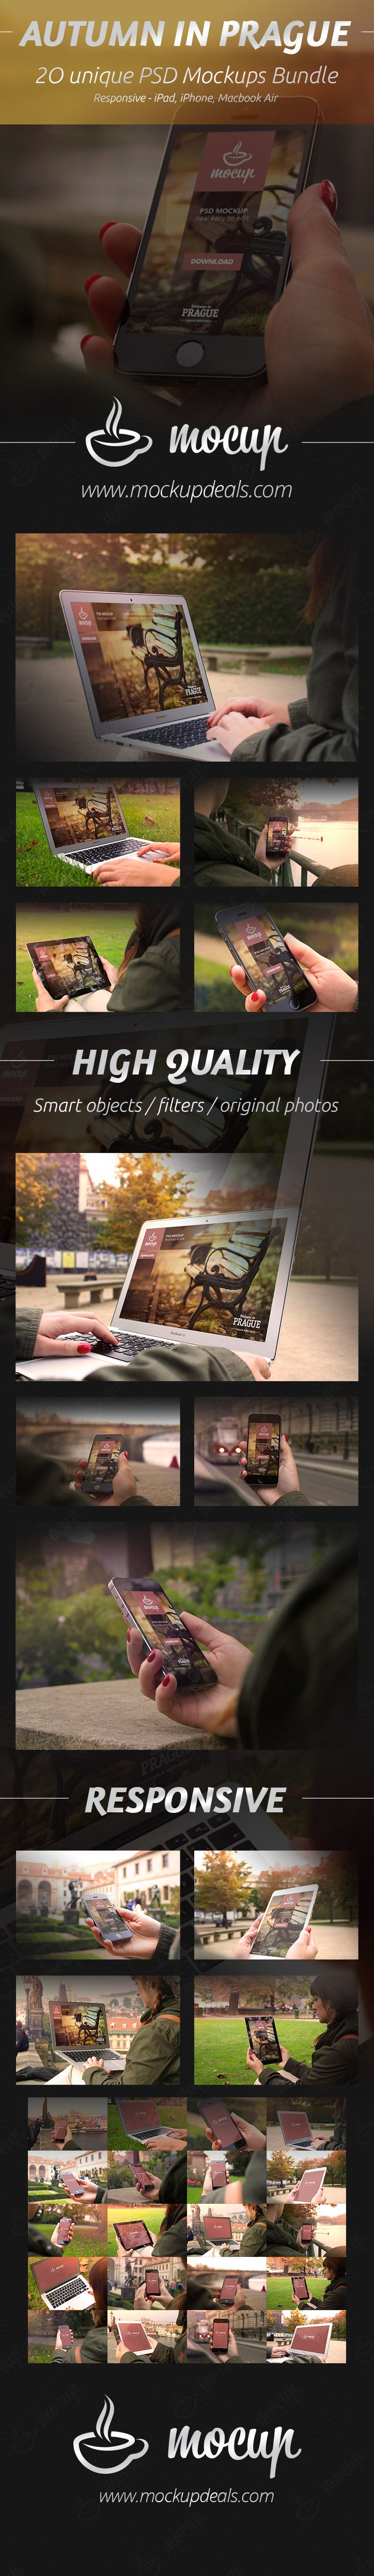 A photorealistic PSD devices (iPhone 5S, iPad 2 and Macbook Air) mockups set Autumn in Prague to present your responsive websites or application design.